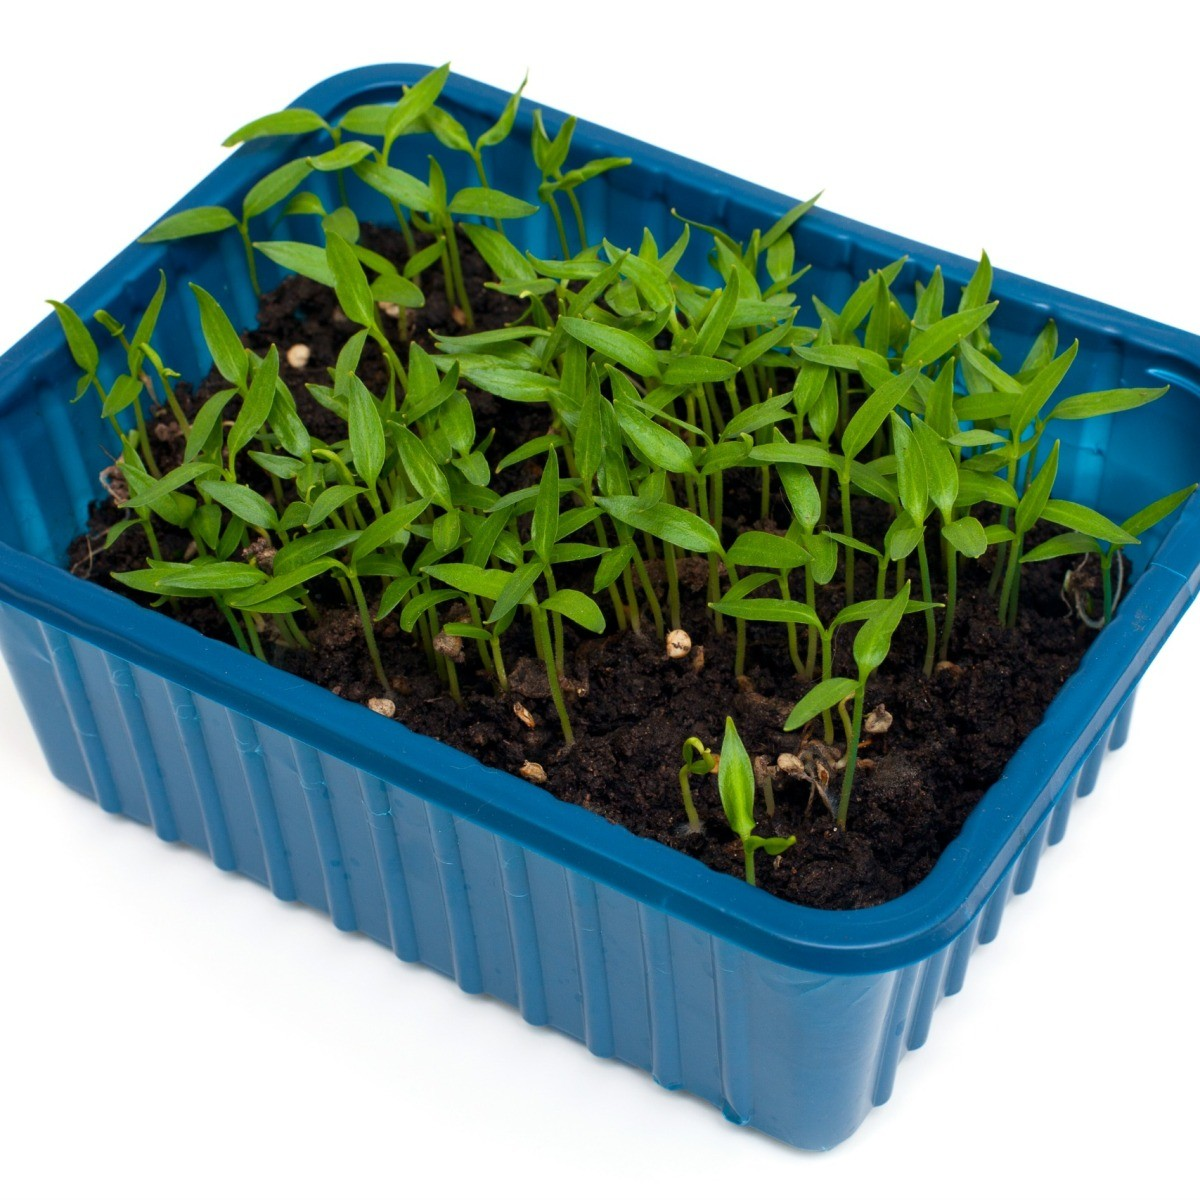 Using Plastic Containers In The Garden